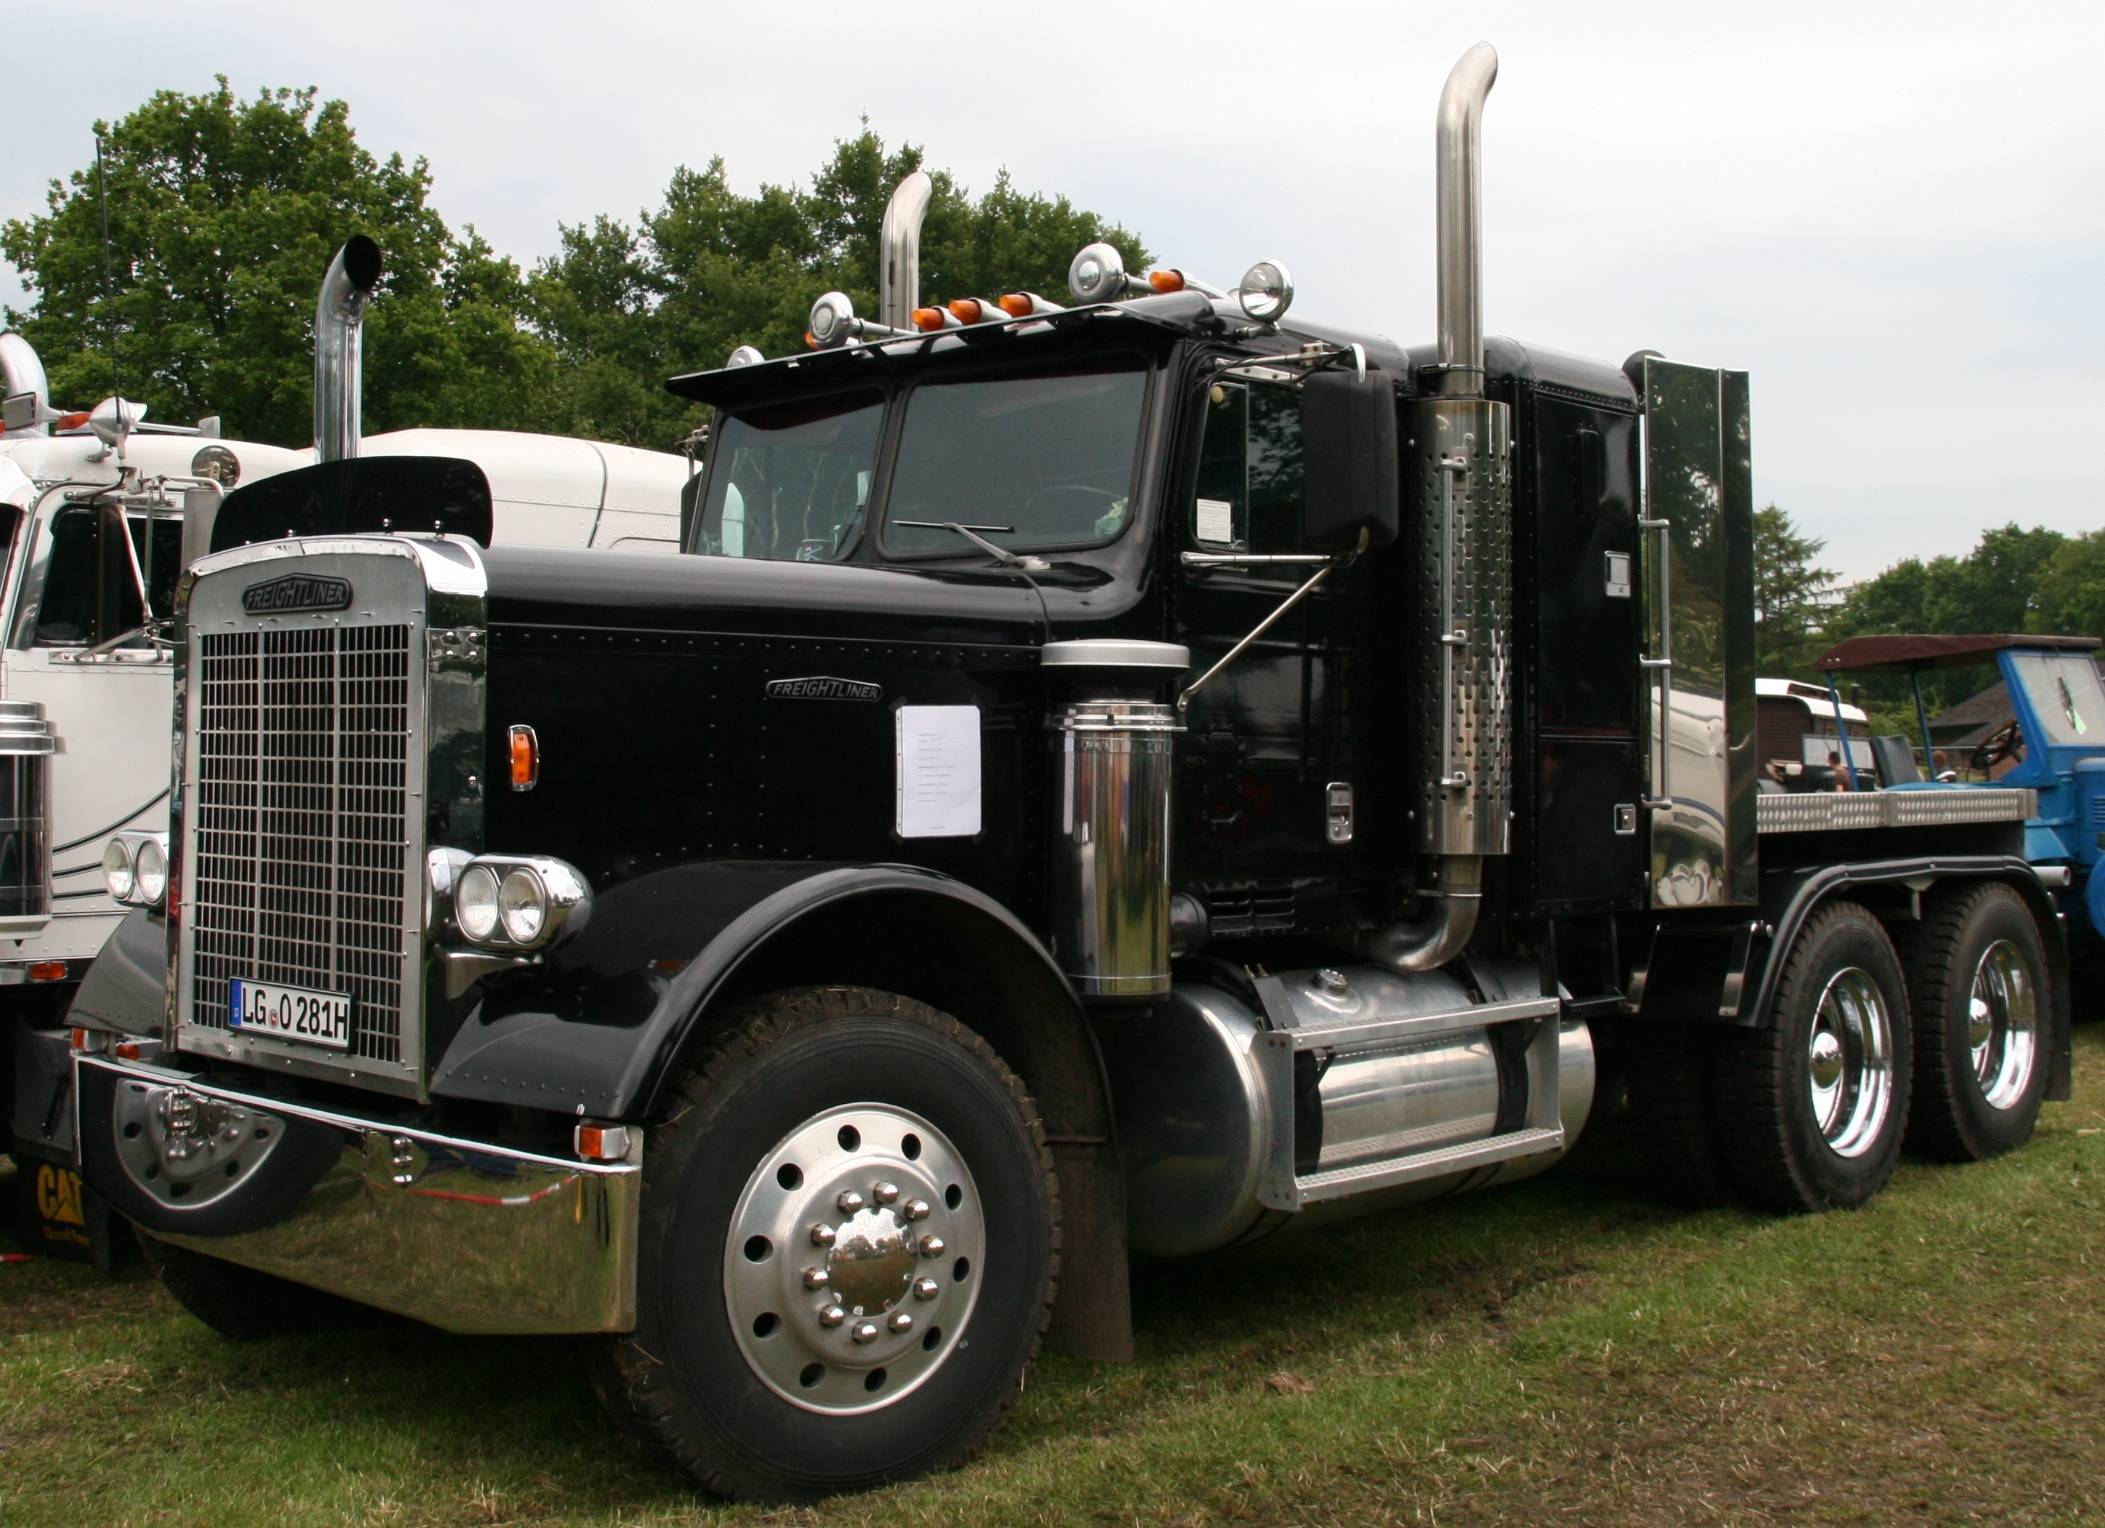 Semi Truck Dimensions Diagram as well View all moreover Tamiya Freightliner Cascadia Evolution Tractor Truck further Trailer Wiring Excursion Related Ugg 413 besides Truck projects and improvements. on trailer wiring diagram for big rig